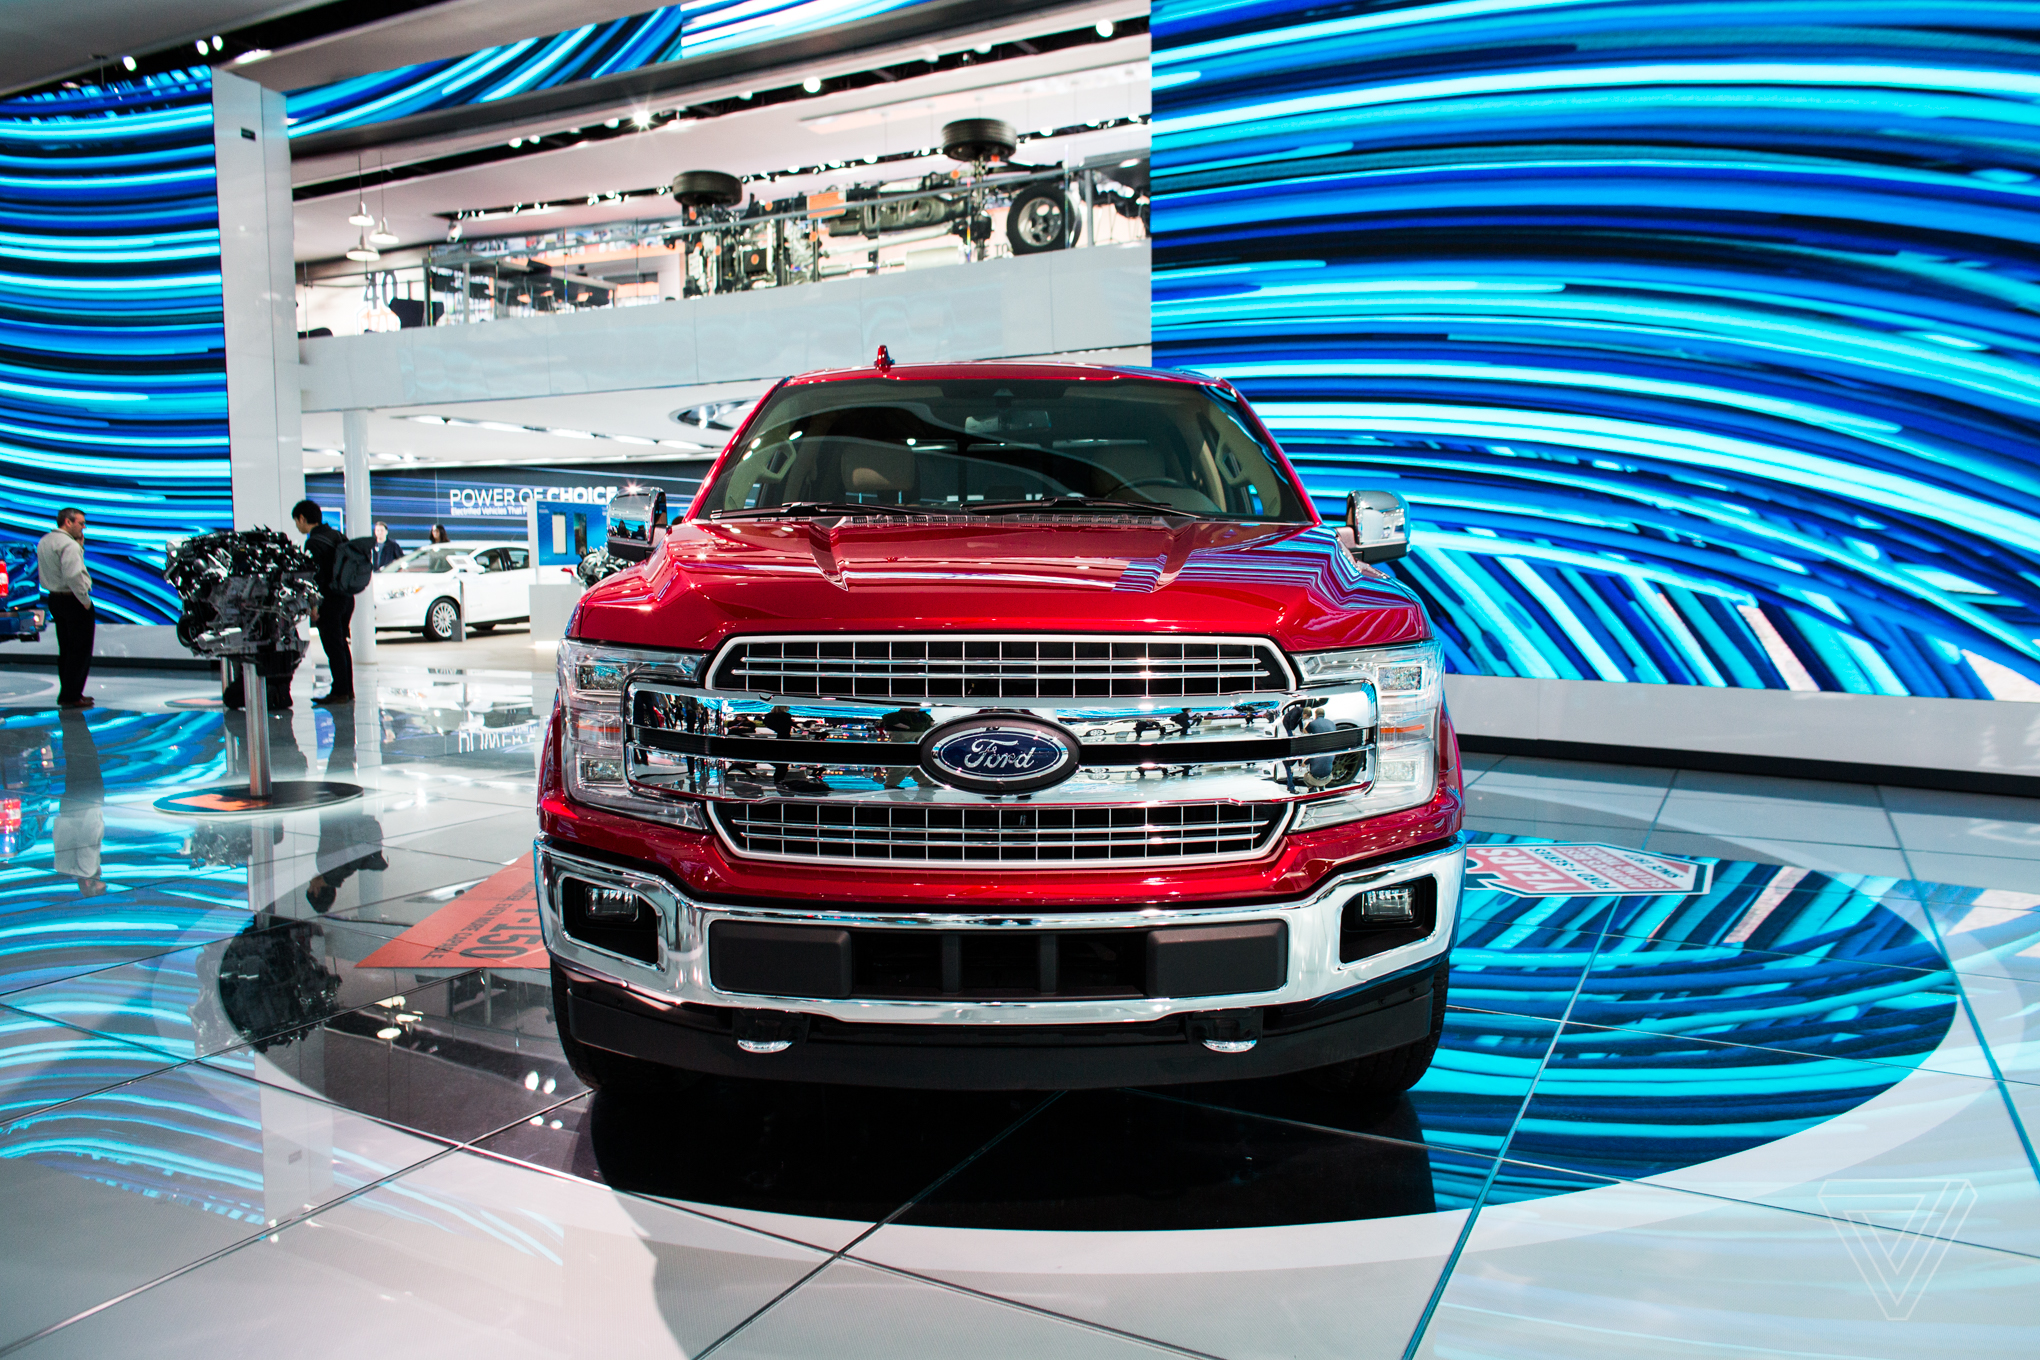 The 2017 detroit auto show in pictures the verge for Ford motor company charitable donations